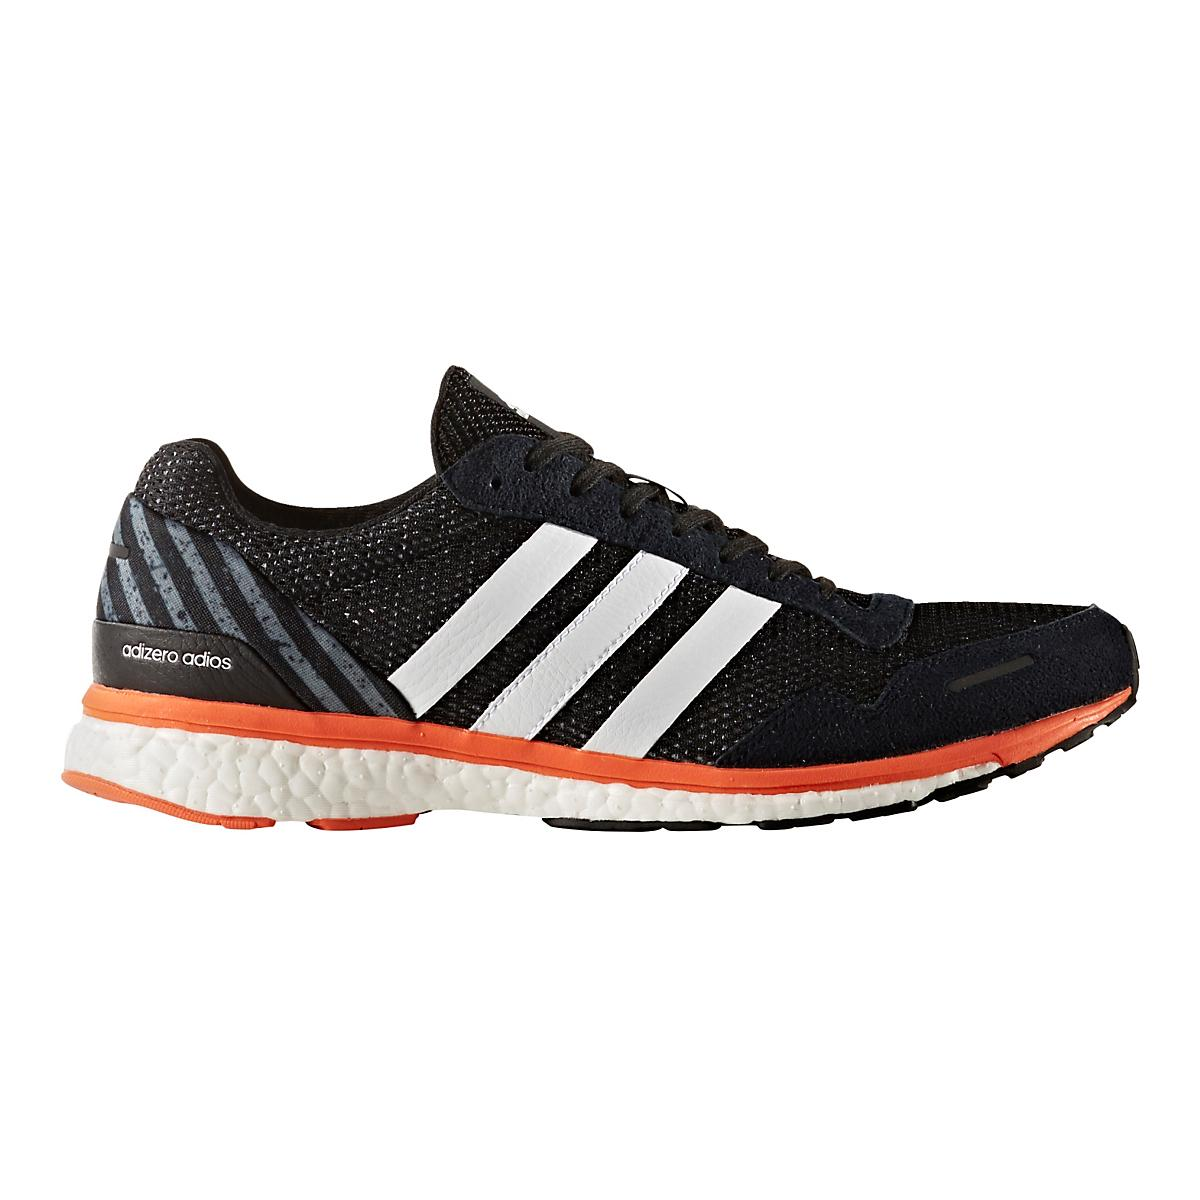 ADIDAS ADIZERO ADIOS BOOST 3 MEN'S RUNNERS. SIZE: 10 USA